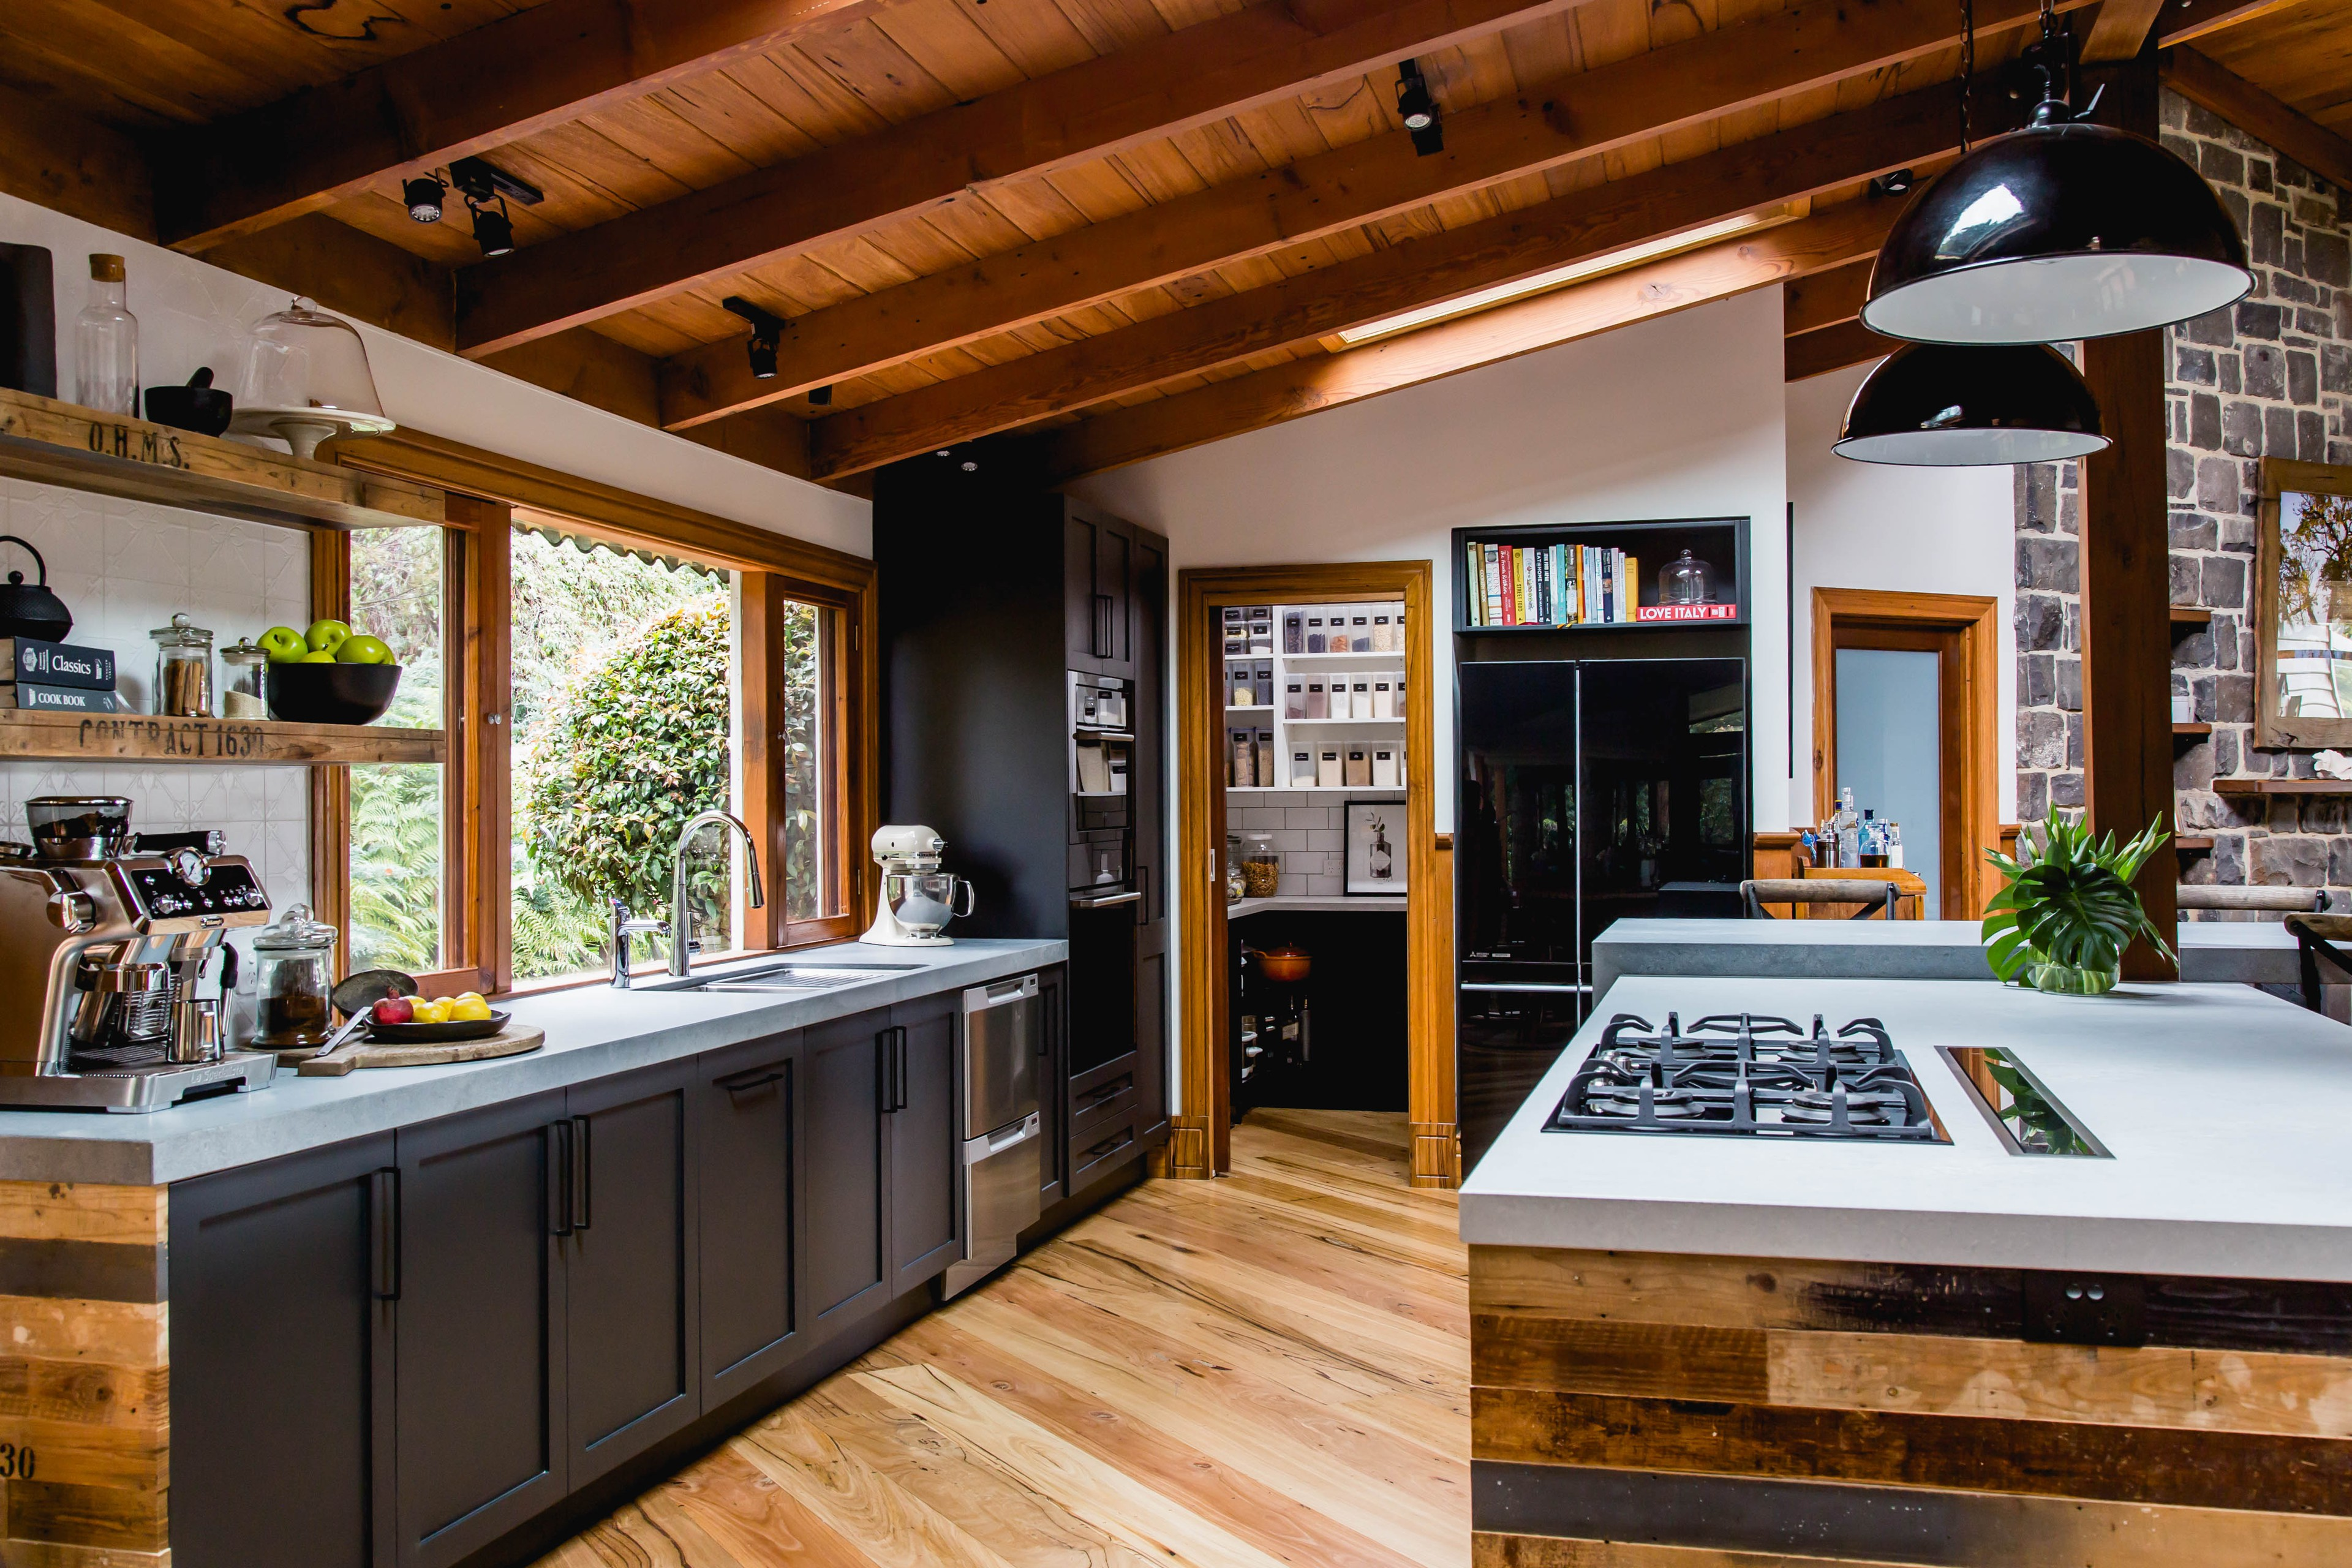 75 Beautiful Rustic Kitchen With Black Cabinets Pictures Ideas June 2021 Houzz